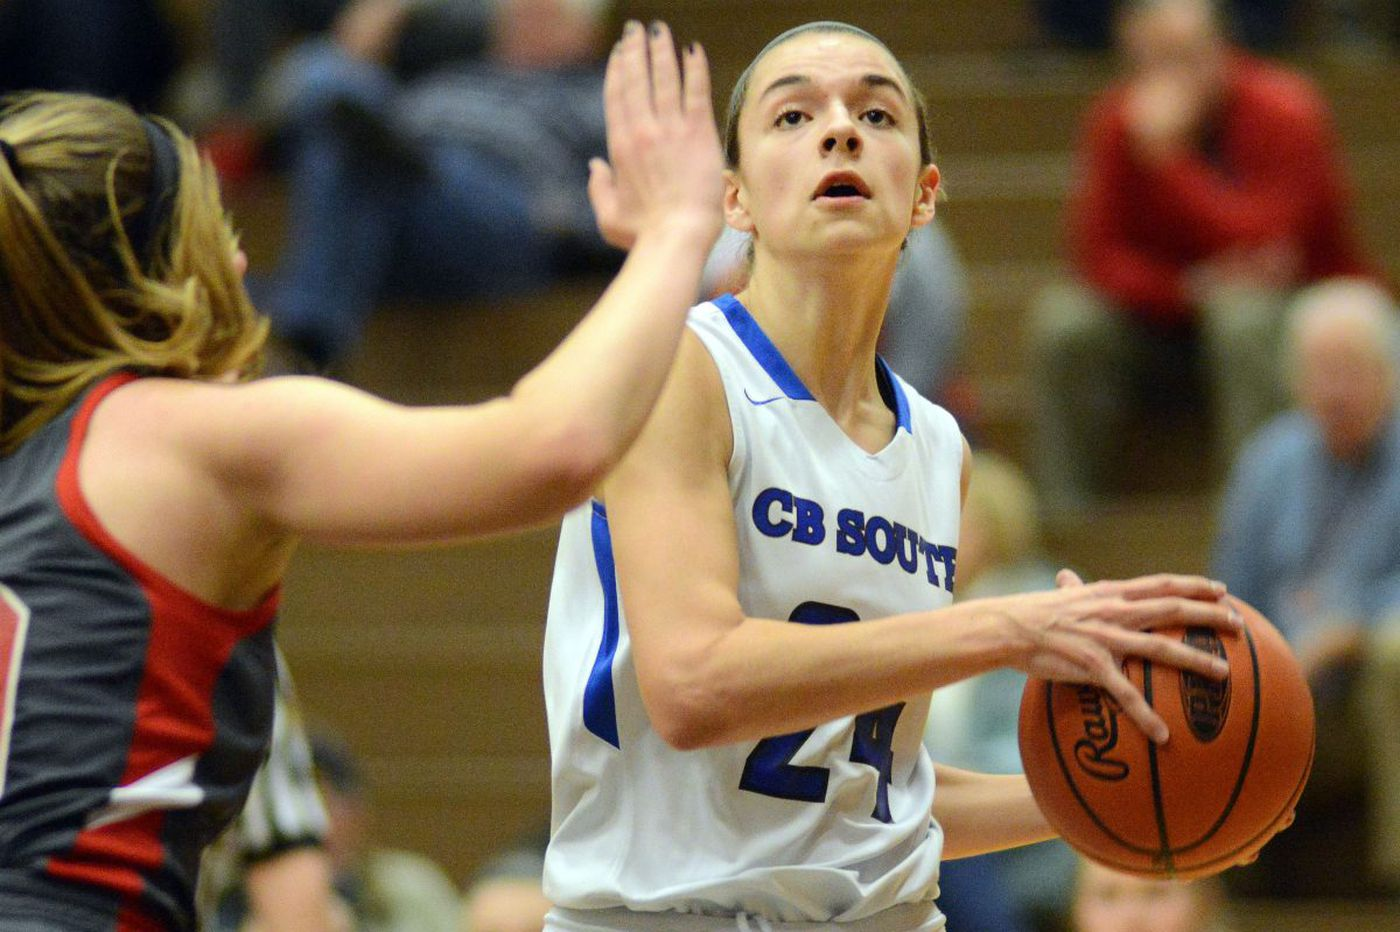 Monday's Pa. roundup: Alexa Brodie's early flurry helps C.B. South advance